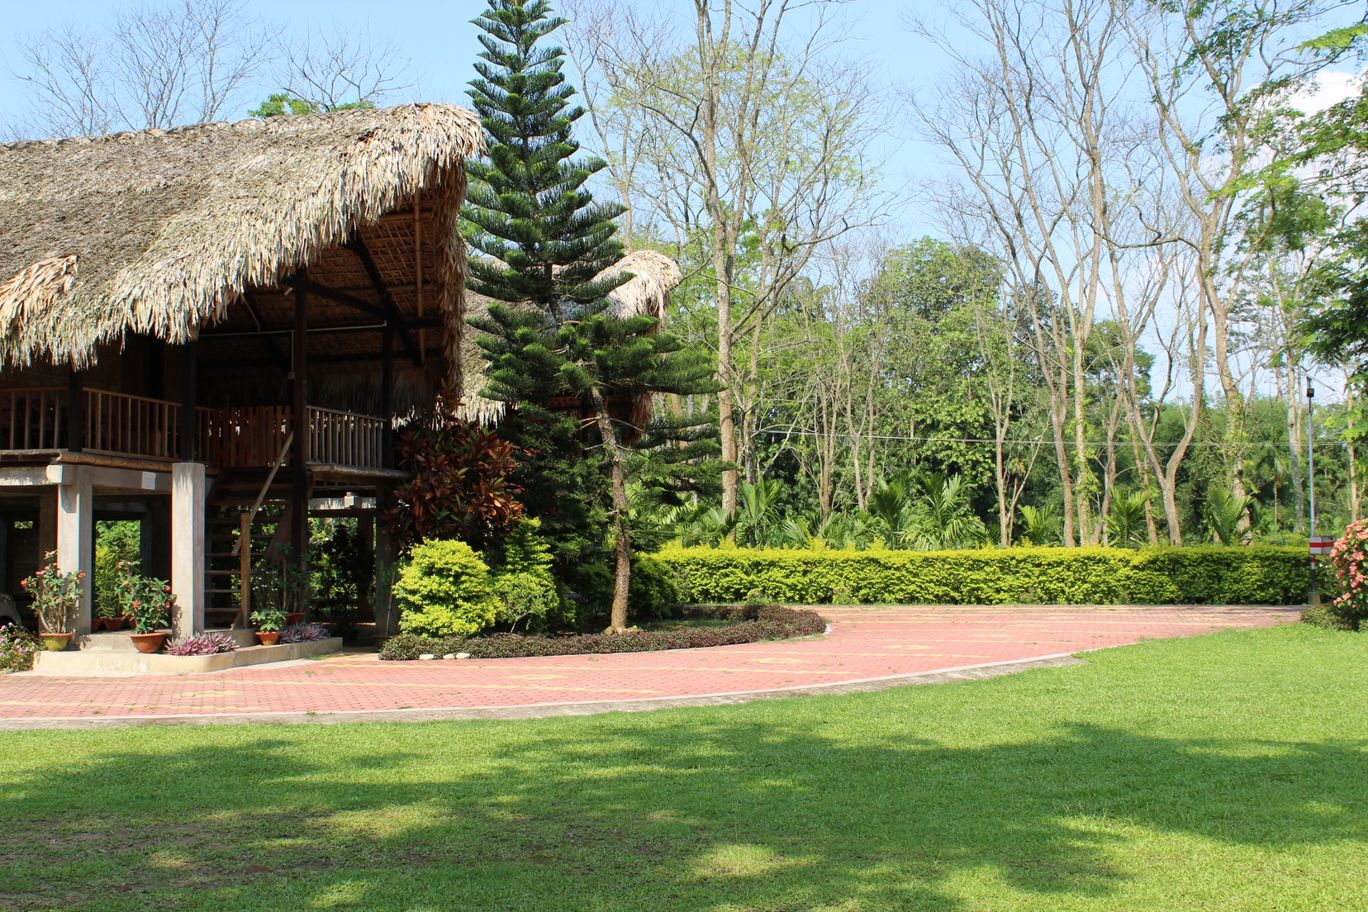 Photo of Singpho Eco Lodge. By NIRUPAM BORGOHAIN